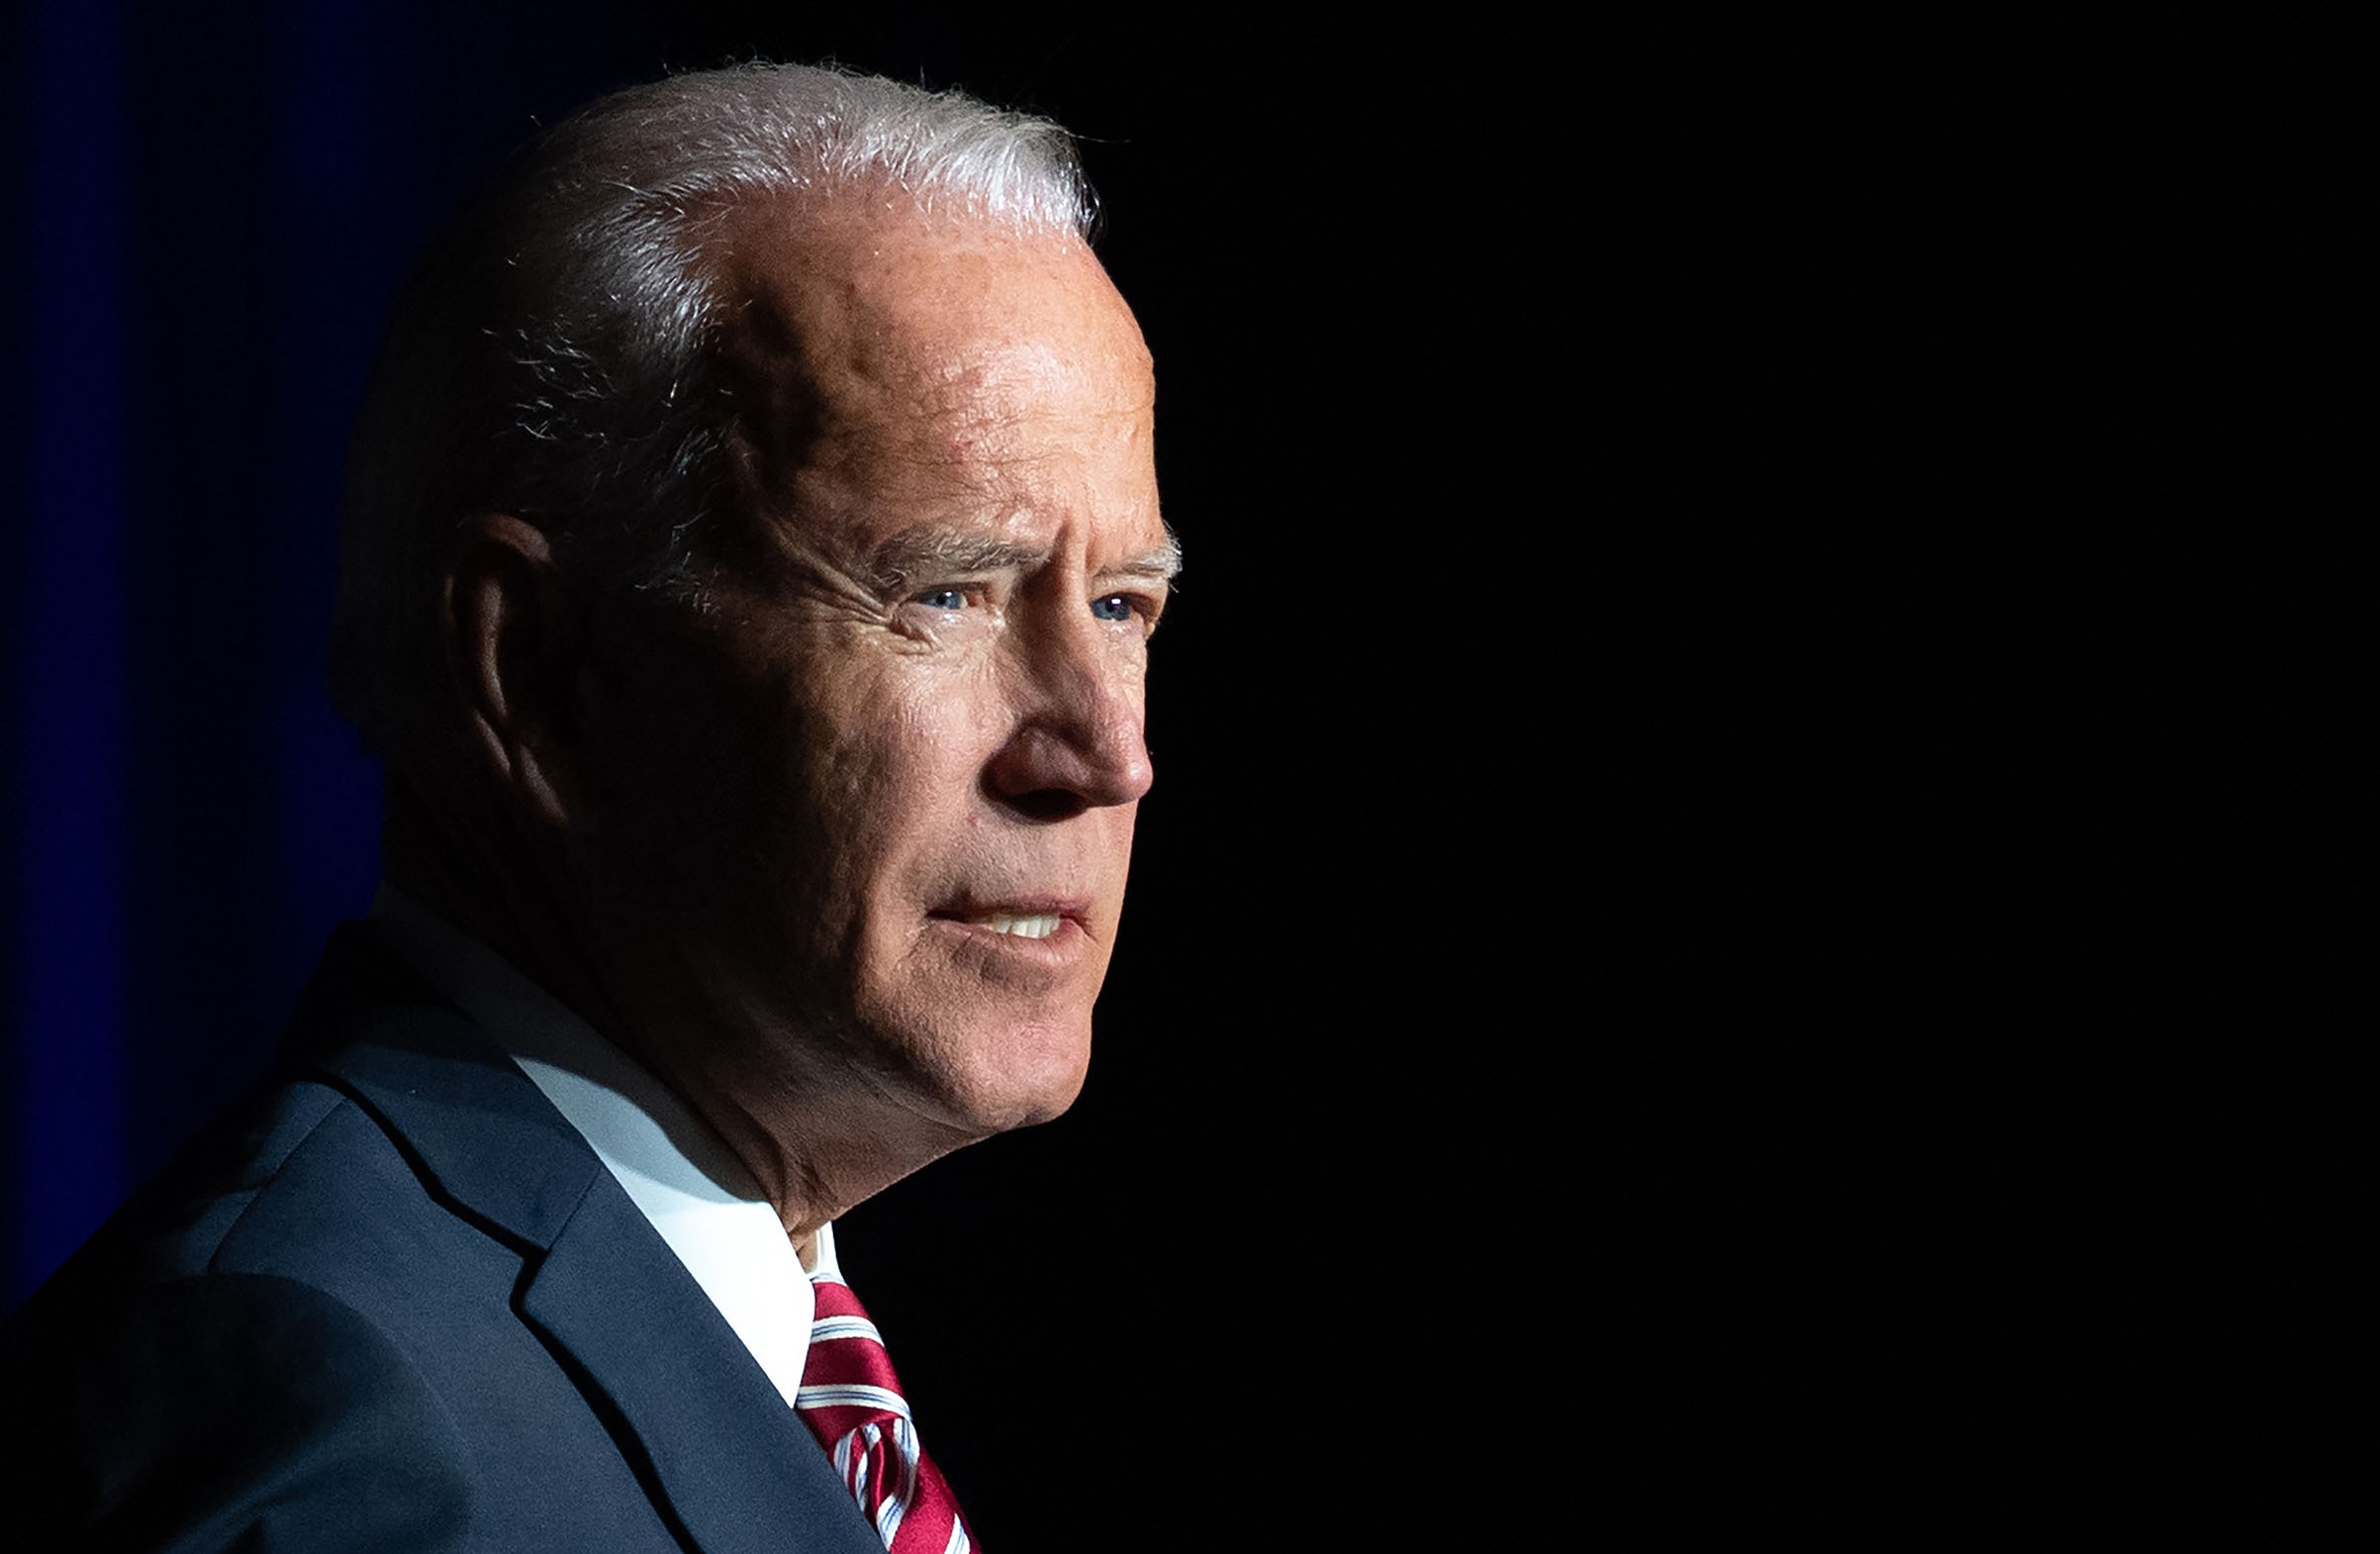 The Democratic Party and Joe Biden, here at an event in March, face turning points